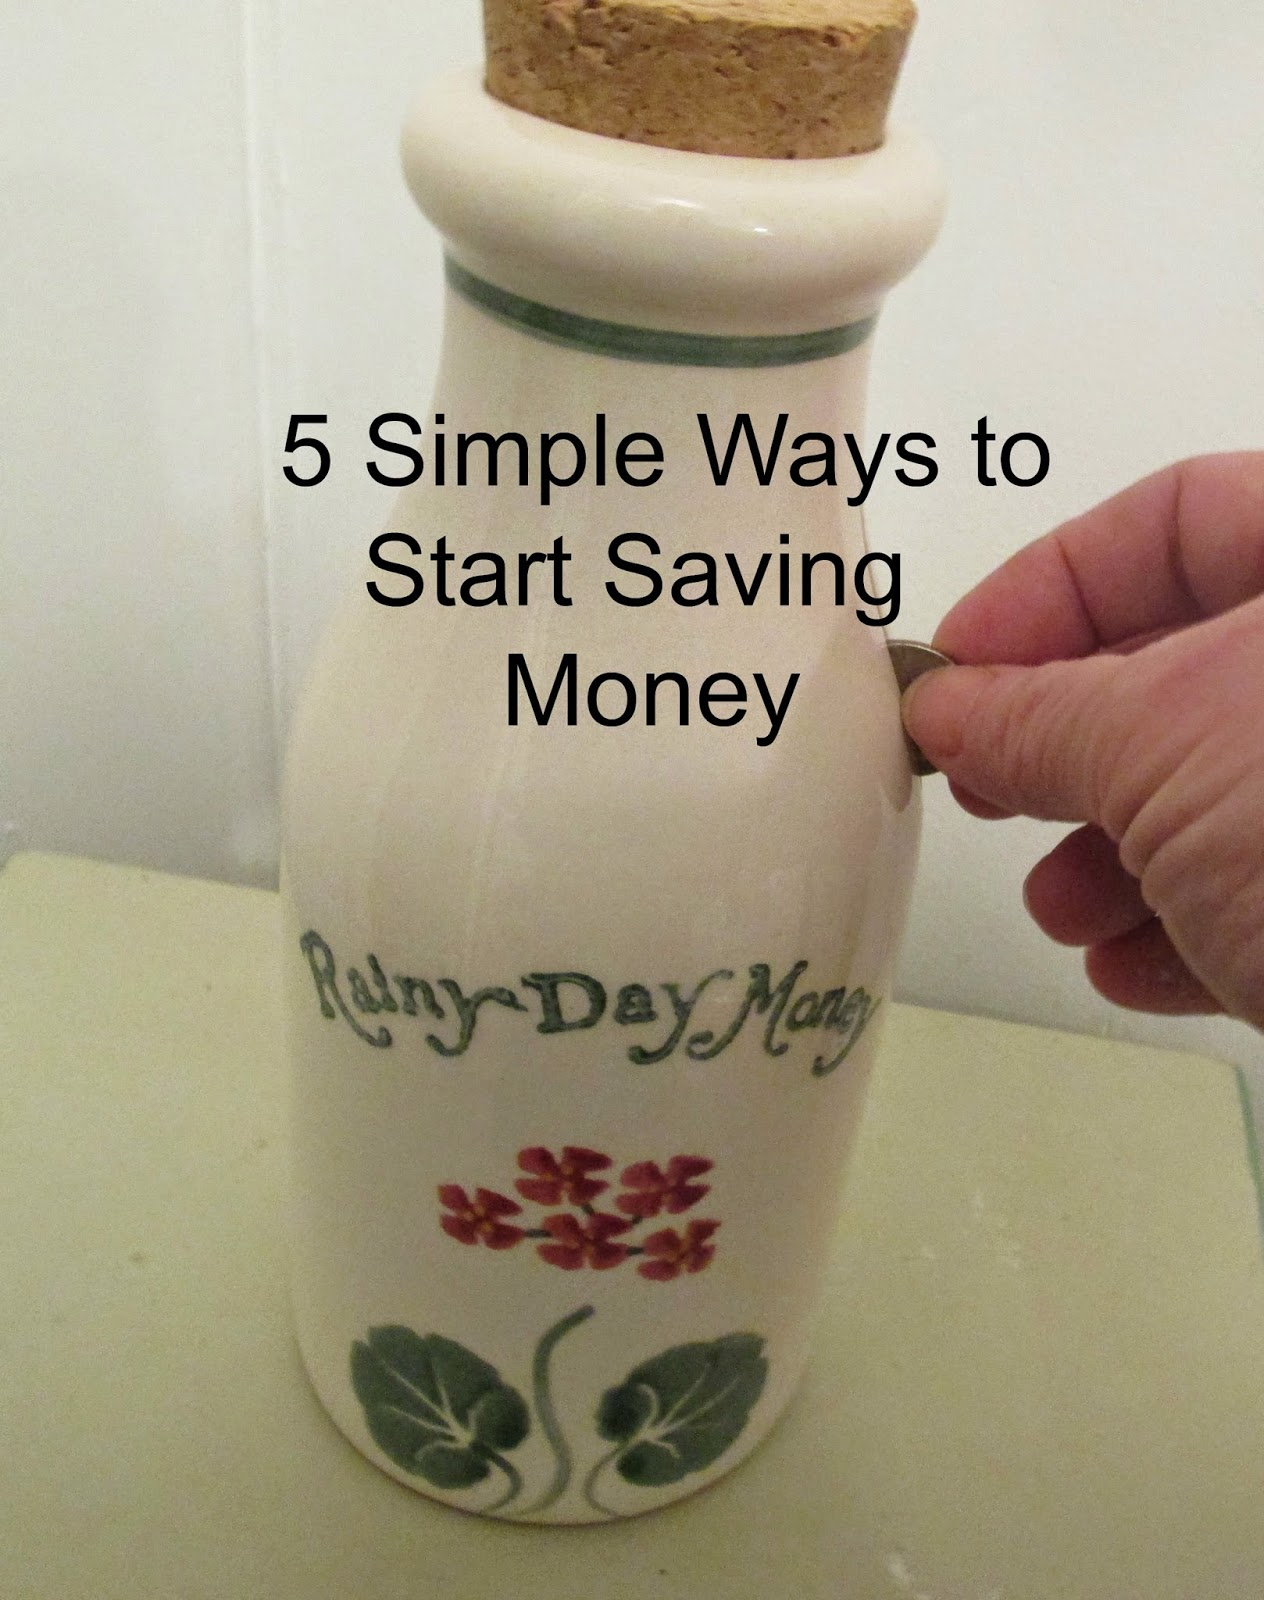 5 Simple Ways to Start Saving Money